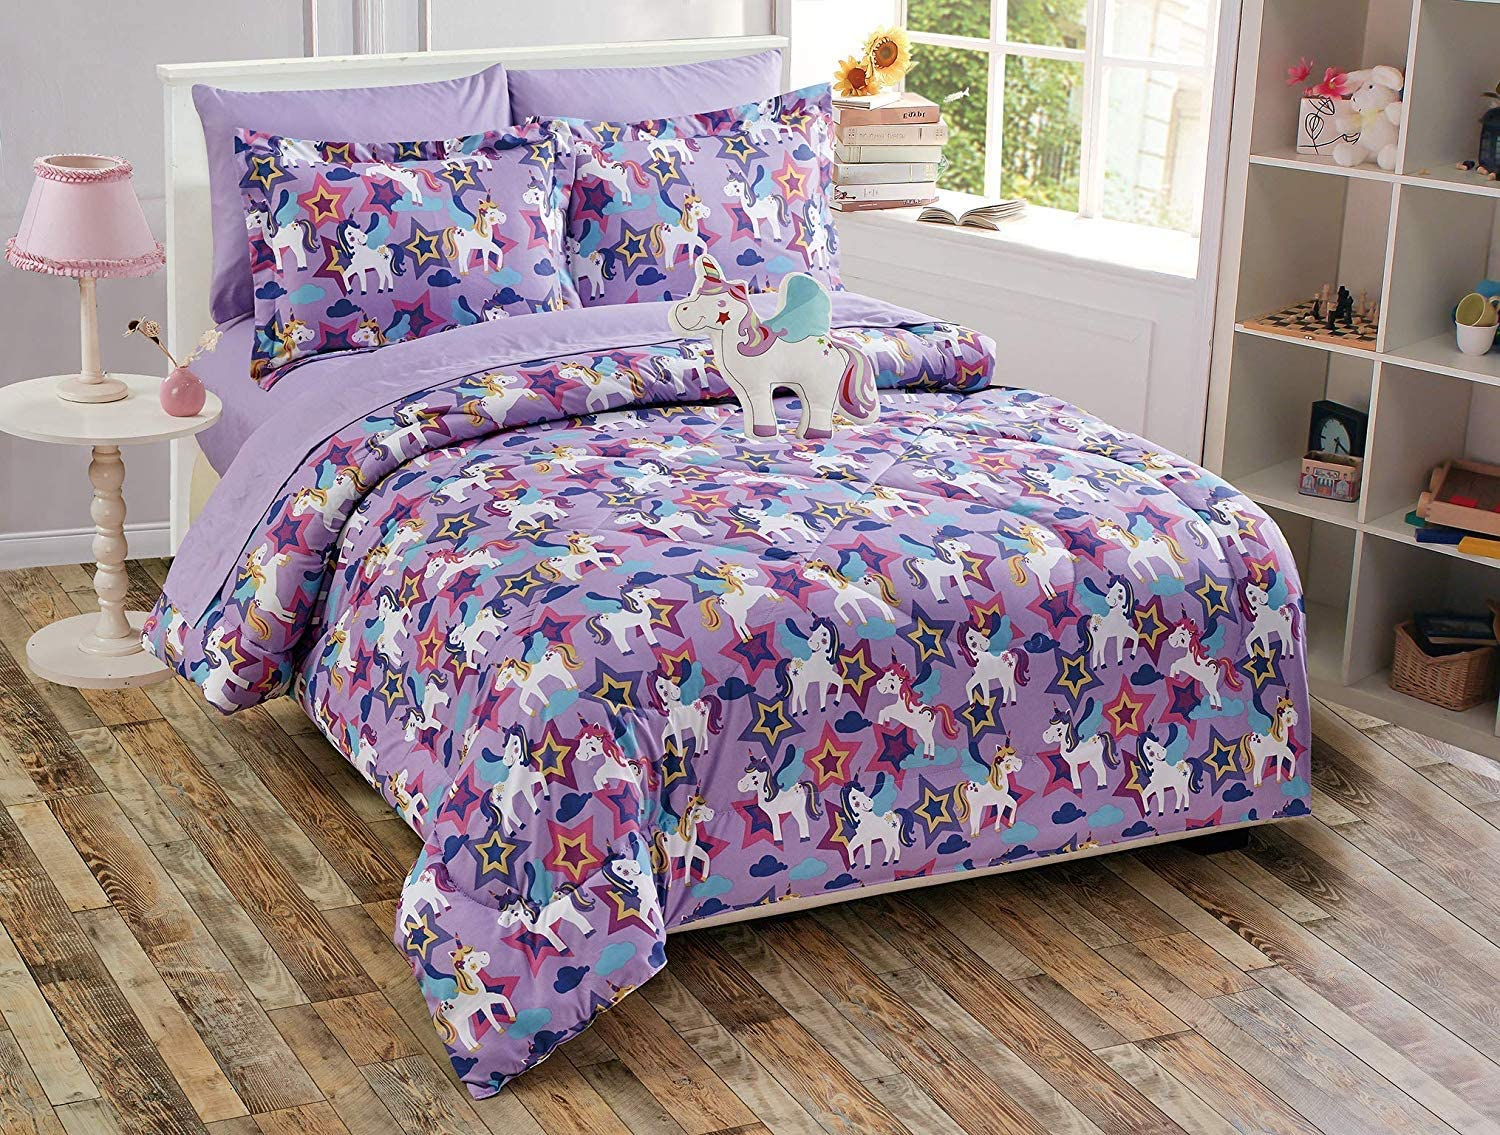 Elegant Homes Multicolor Purple Unicorn Little Pony Design Fun 6 Piece Comforter Bedding Set for Girls/Kids Bed in a Bag with Sheet Set & Decorative Toy Pillow # Purple Unicorn (Twin Size)